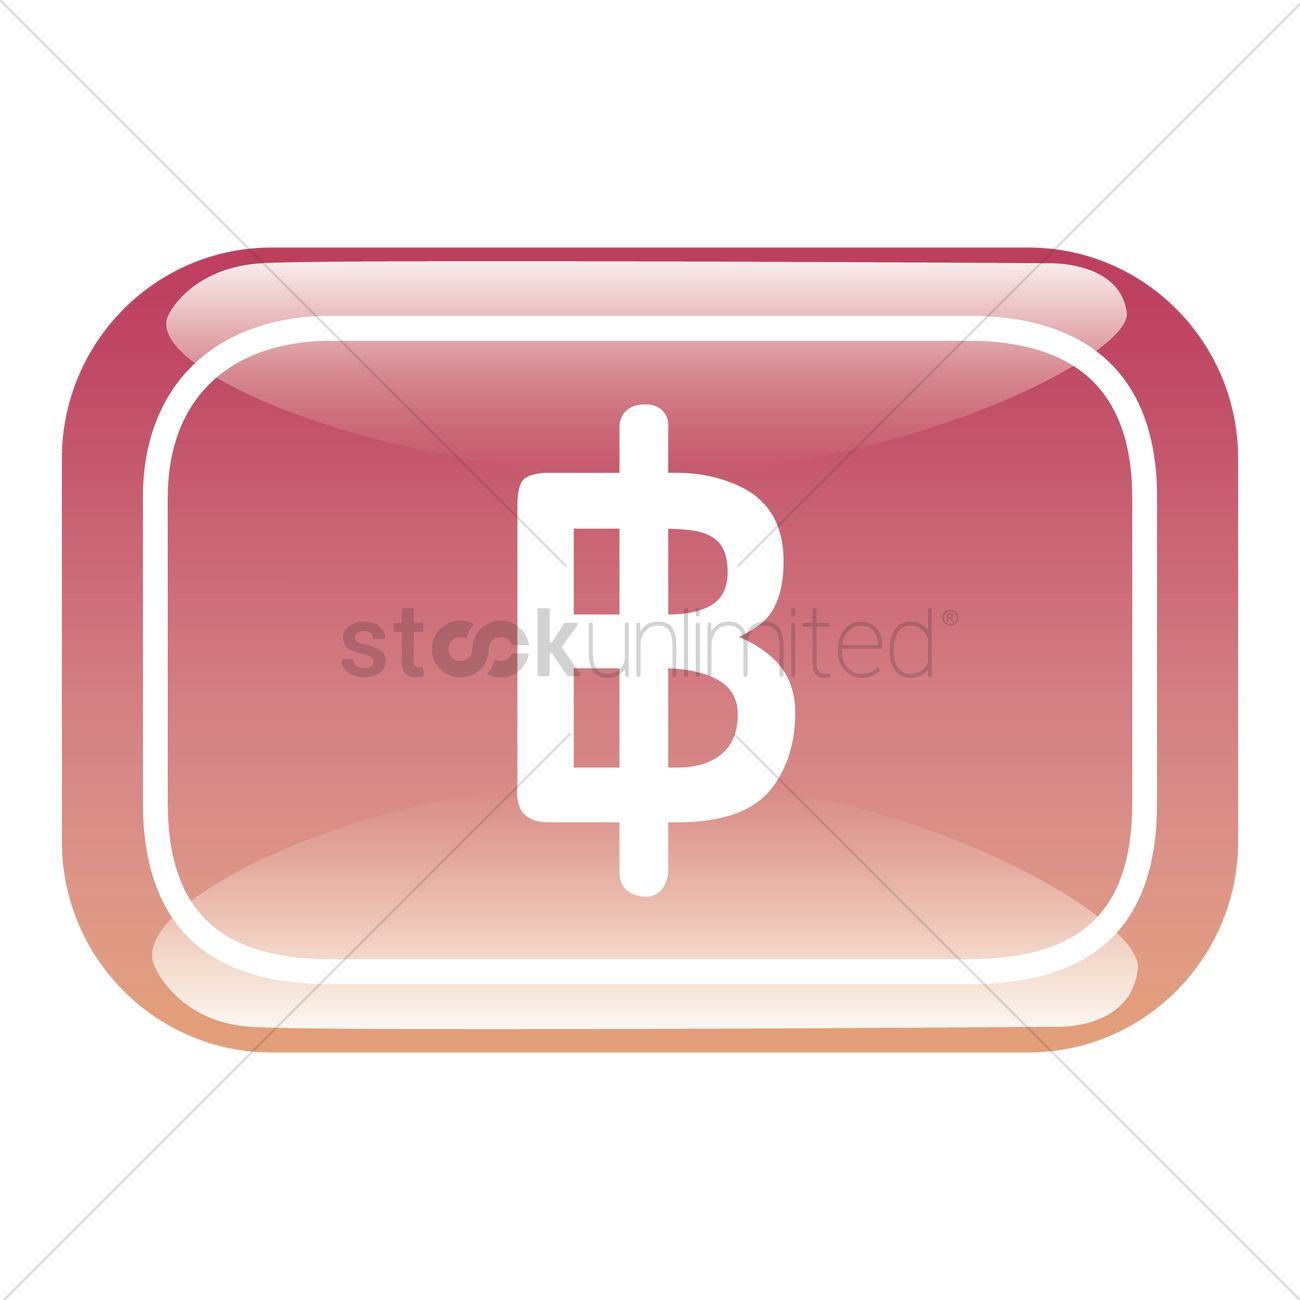 Thailand Baht Currency Symbol Vector Image 1306065 Stockunlimited